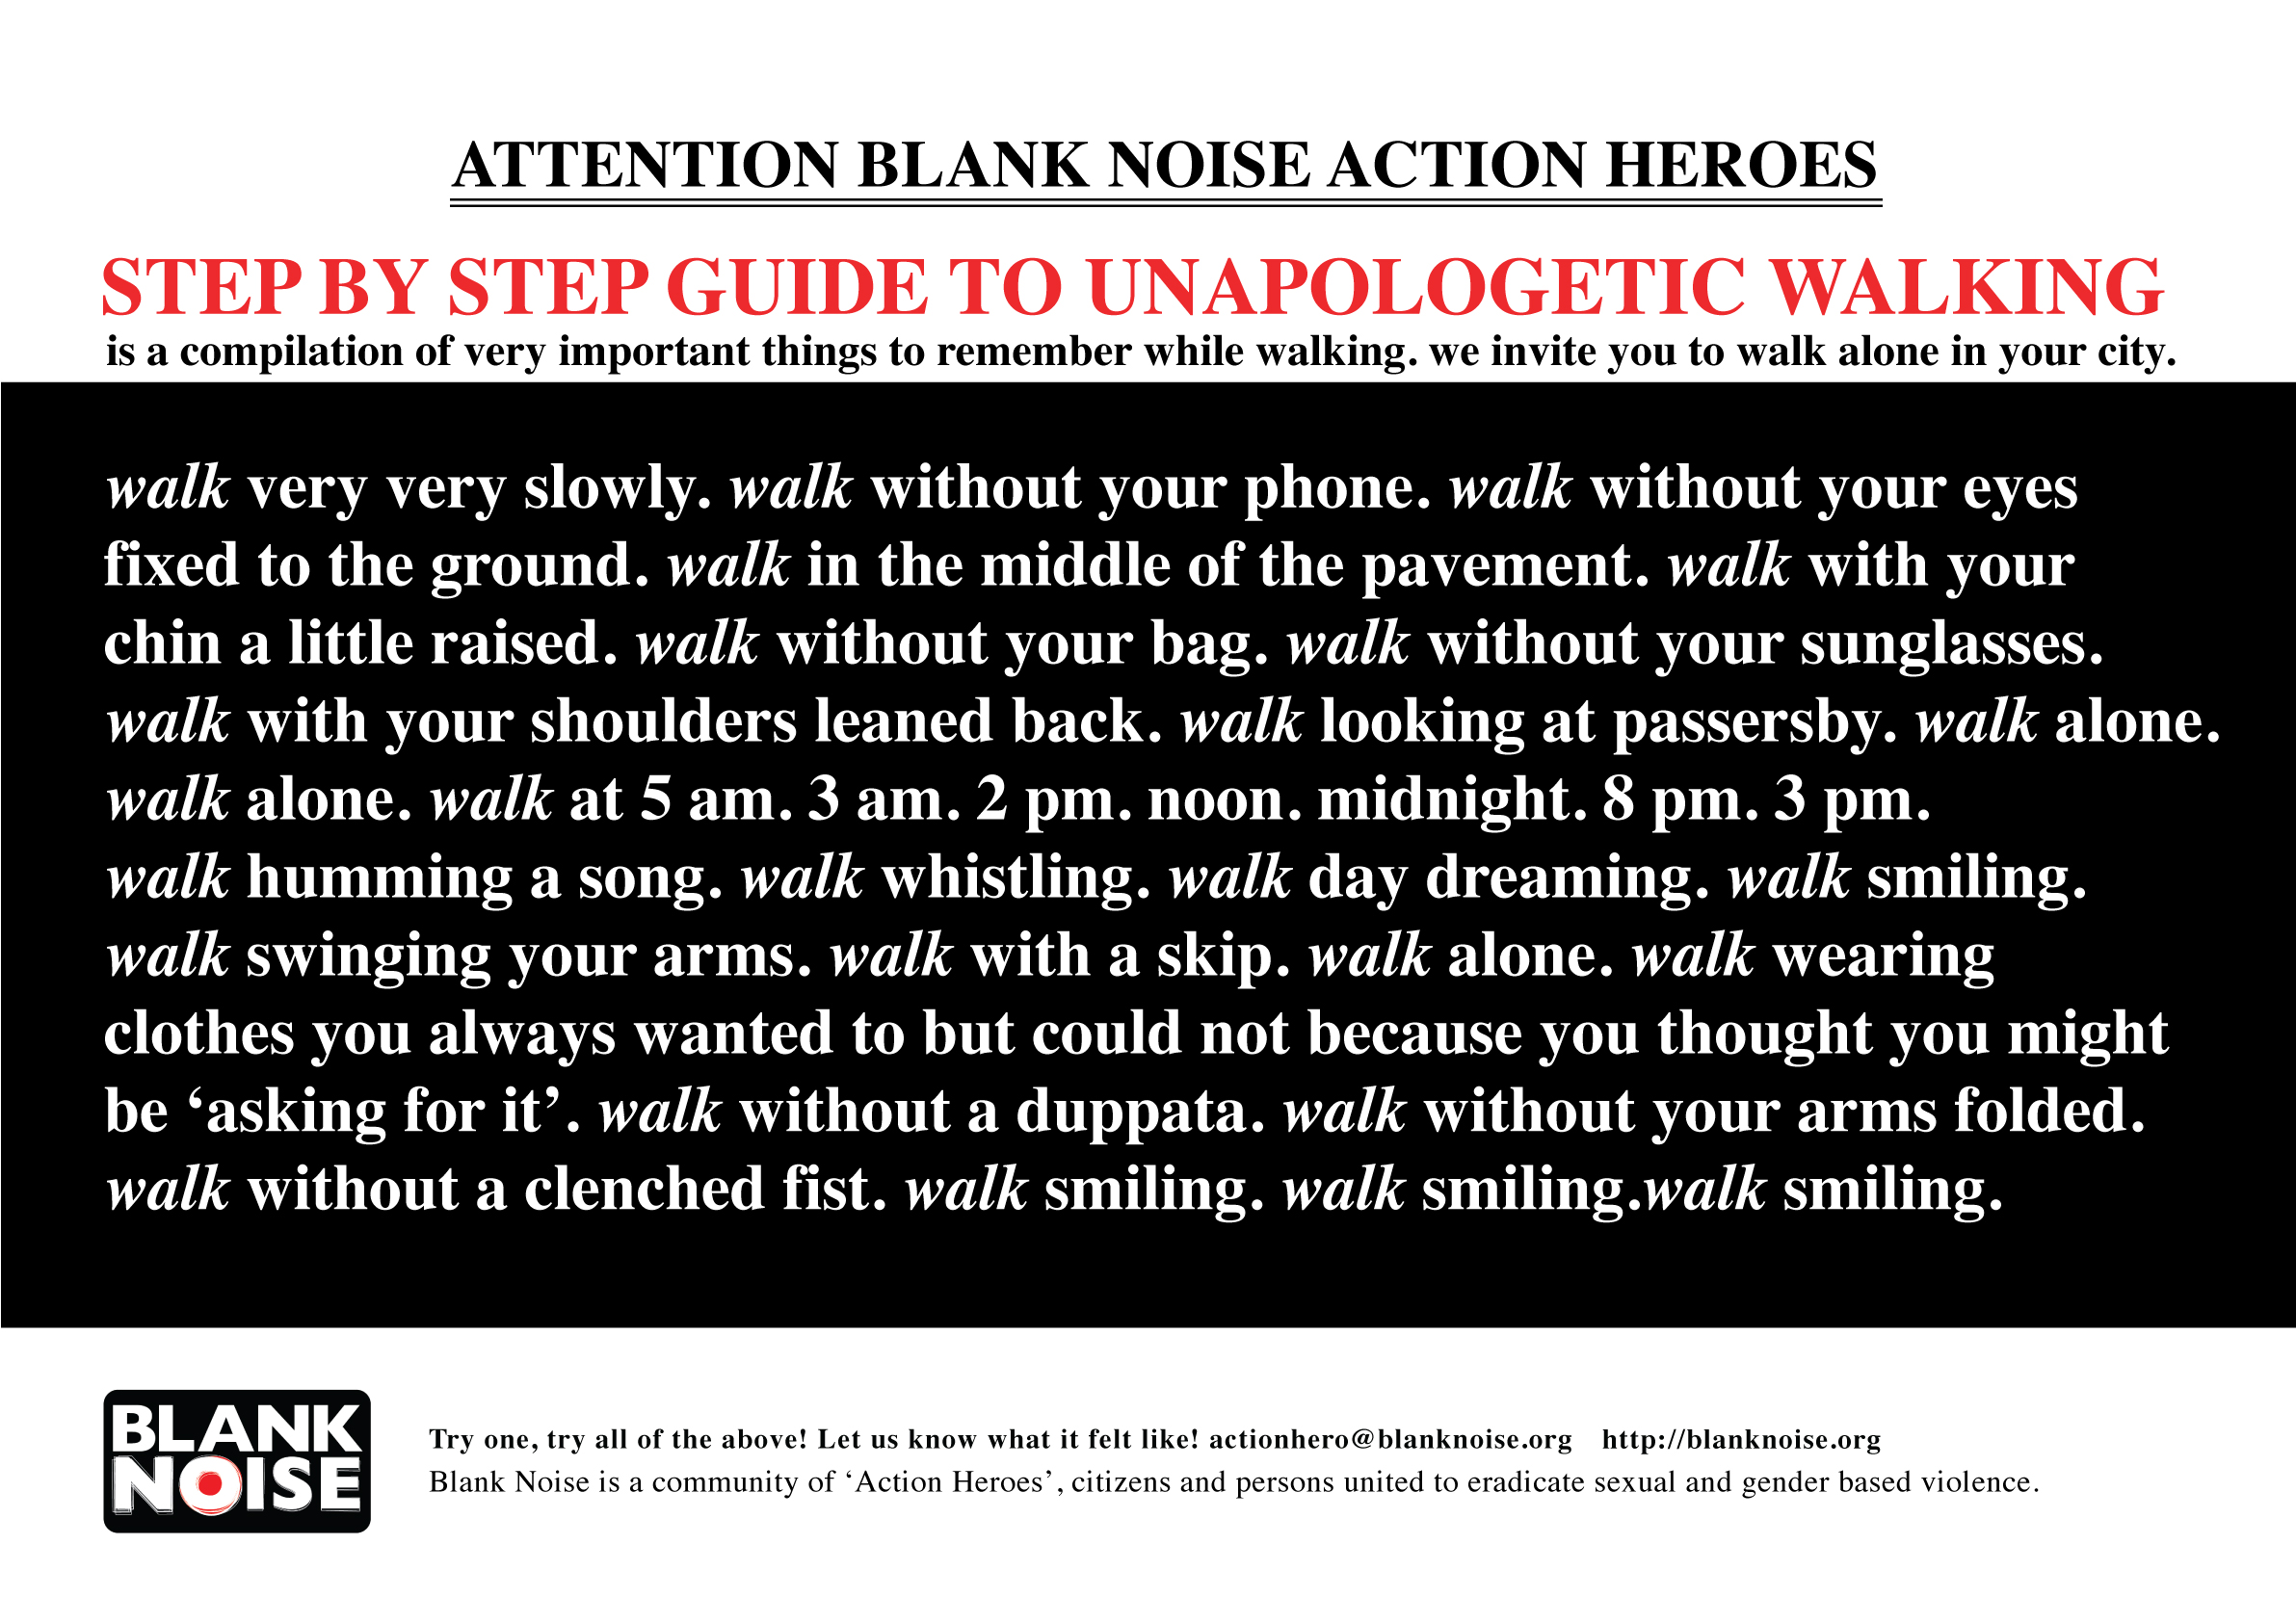 Step By Step Guide To Unapologetic Walking (2008) The poem was written , inspired by the responses of various 'Action Heroes', who reported affirmative shifts after participating in Blank Noise Actions.